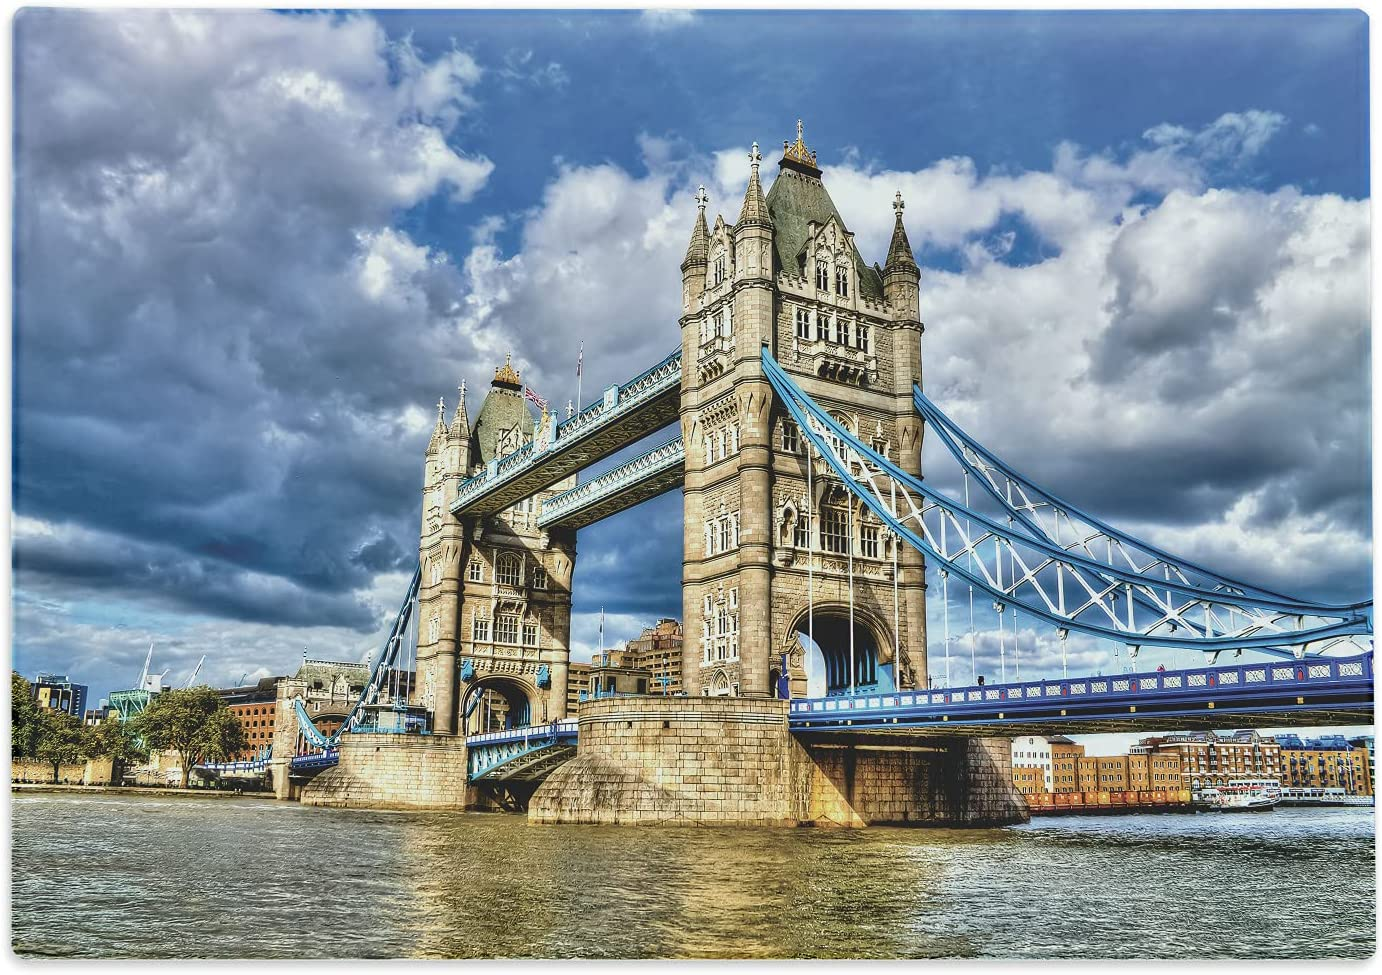 Ambesonne London Cutting Board, Historical Tower Bridge on River London UK British Day Time International Heritage, Decorative Tempered Glass Cutting and Serving Board, Large Size, Multicolor